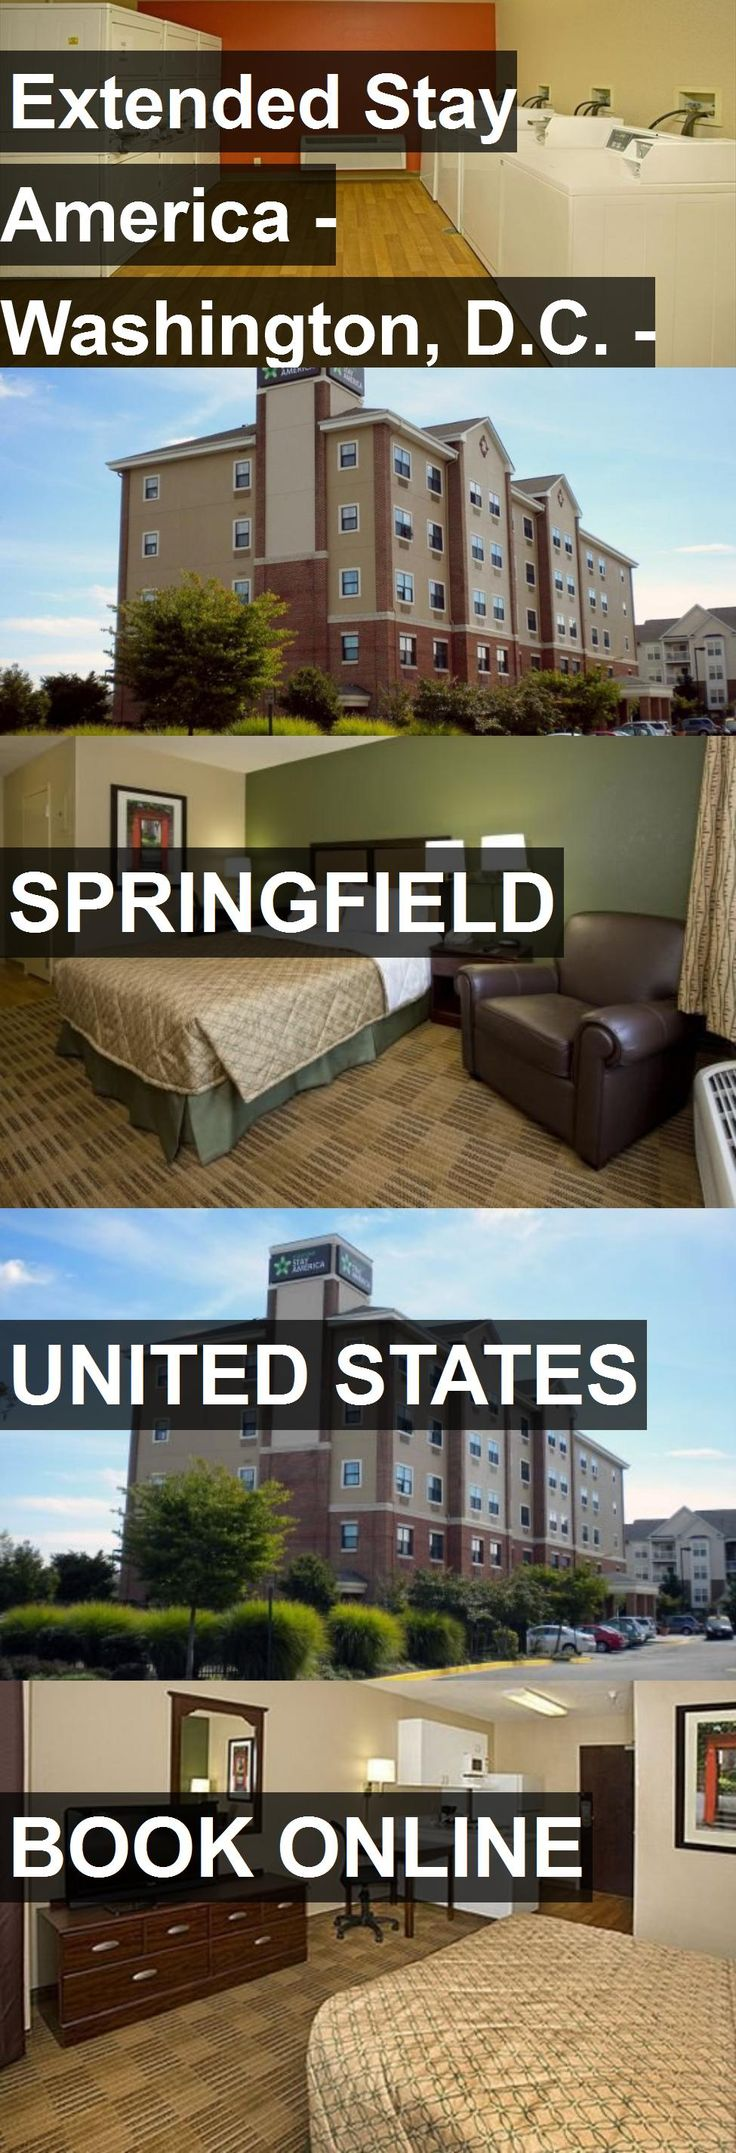 Hotel Extended Stay America - Washington, D.C. - Springfield in Springfield, United States. For more information, photos, reviews and best prices please follow the link. #UnitedStates #Springfield #ExtendedStayAmerica-Washington,D.C.-Springfield #hotel #travel #vacation